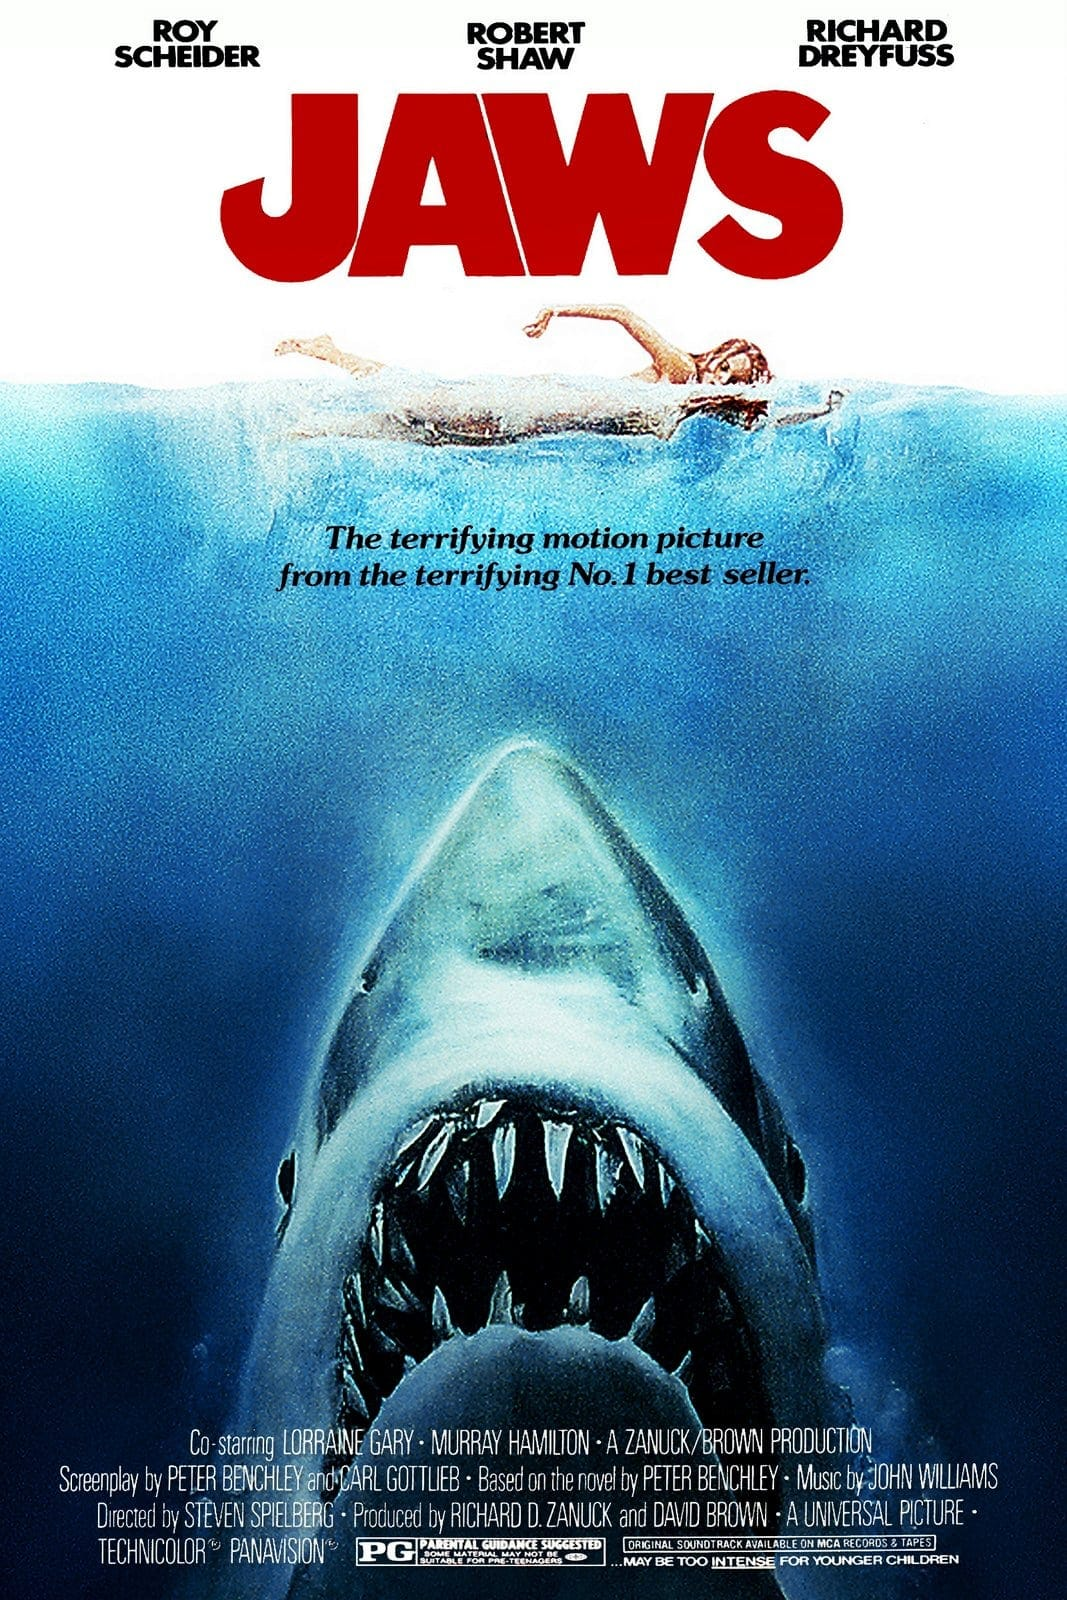 The 1975 JAWS movie poster